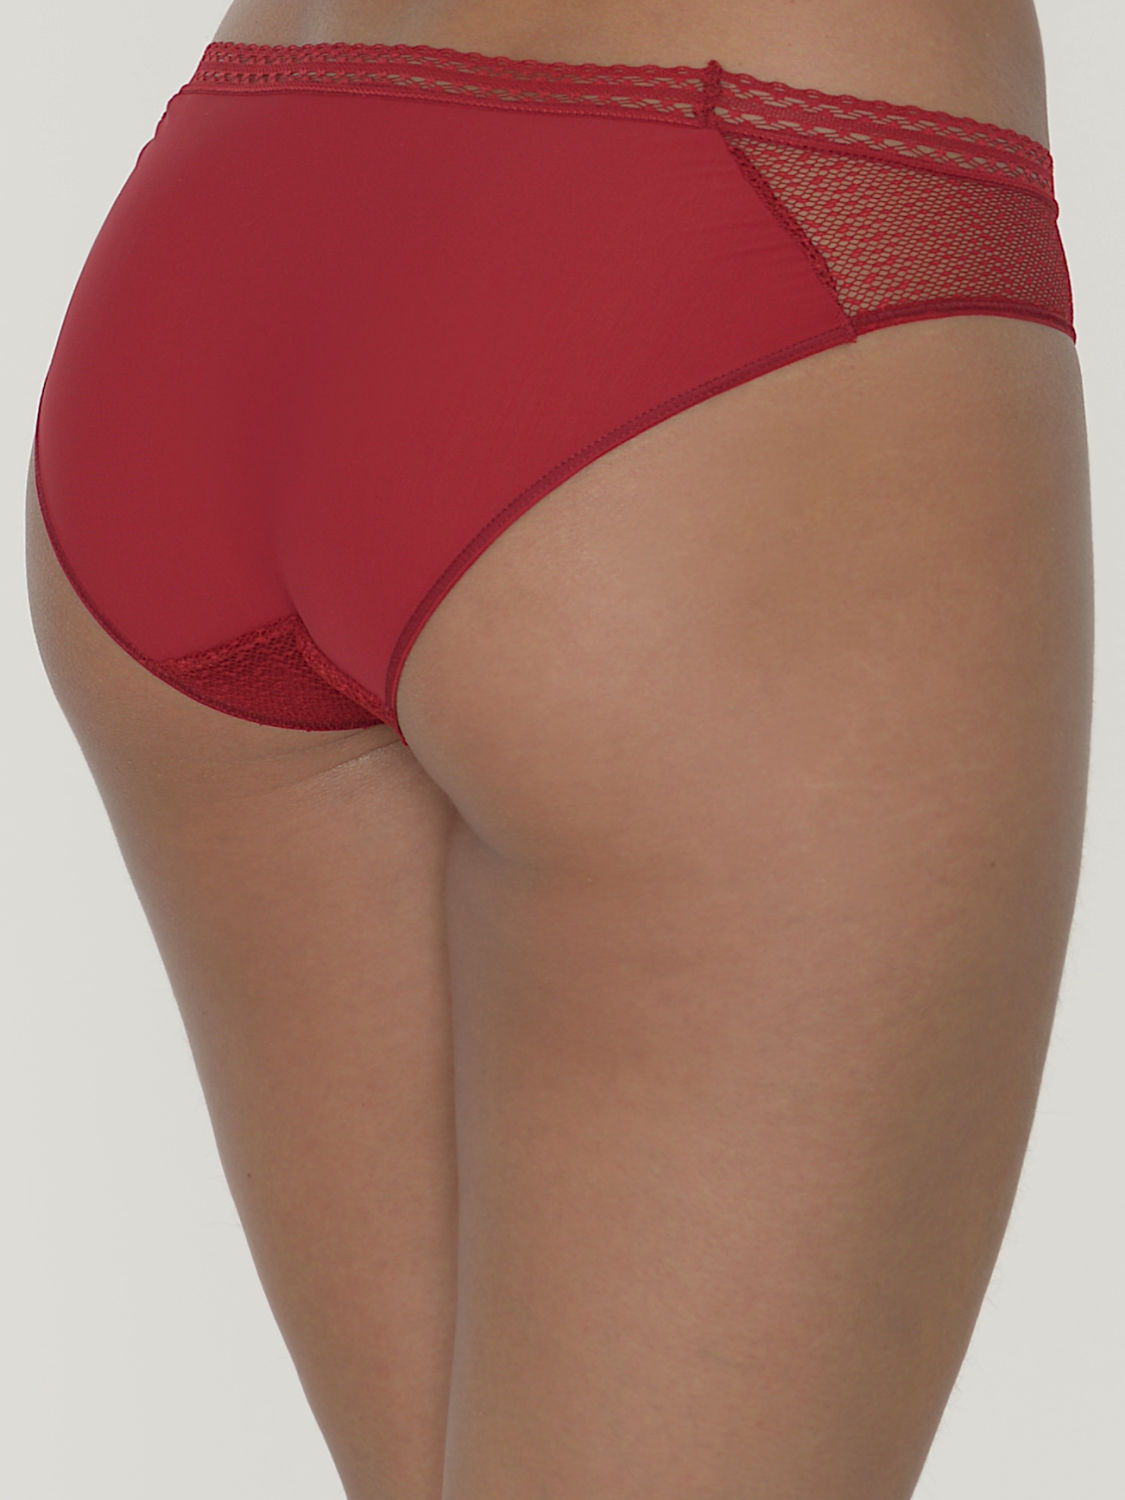 Passionata Slip Fall in Love Farbe Rouge Passion